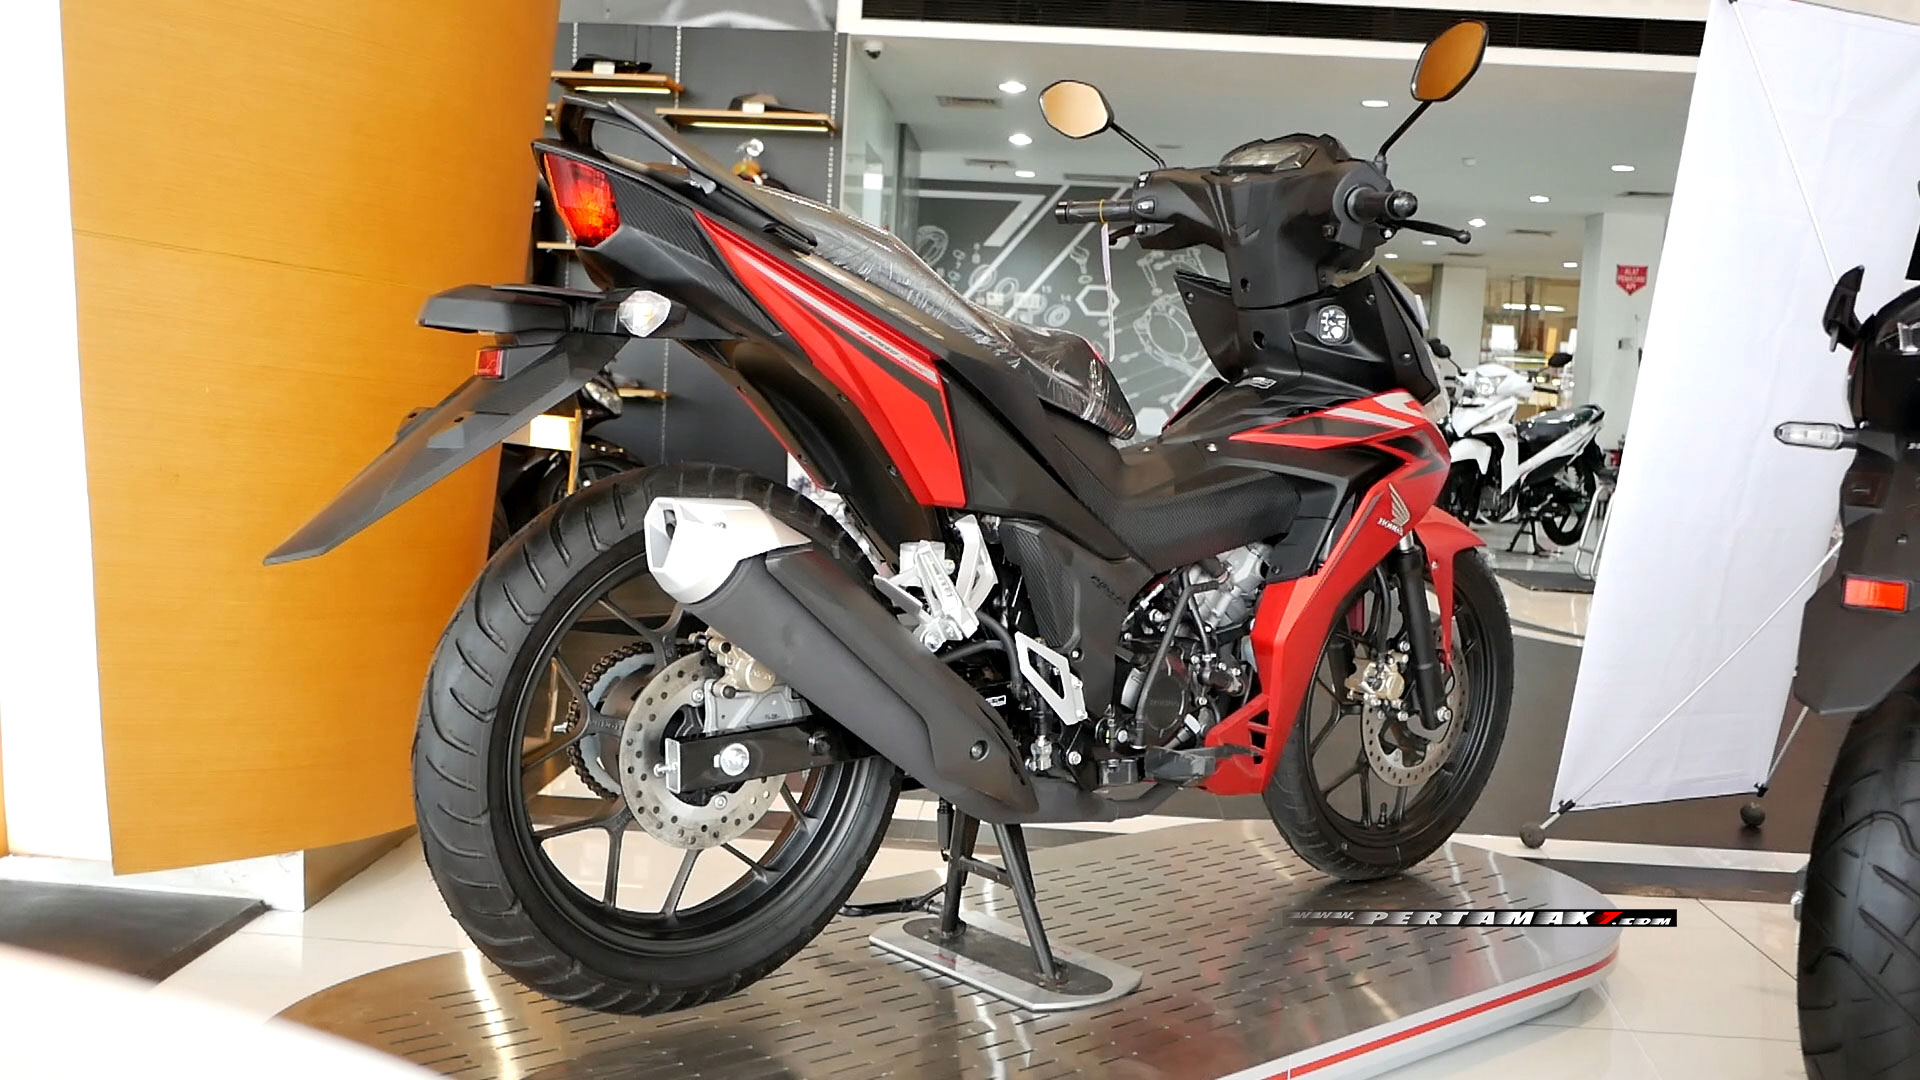 Video Bertemu New Honda Supra GTR 150 Facelift 2020 MMC Jogja